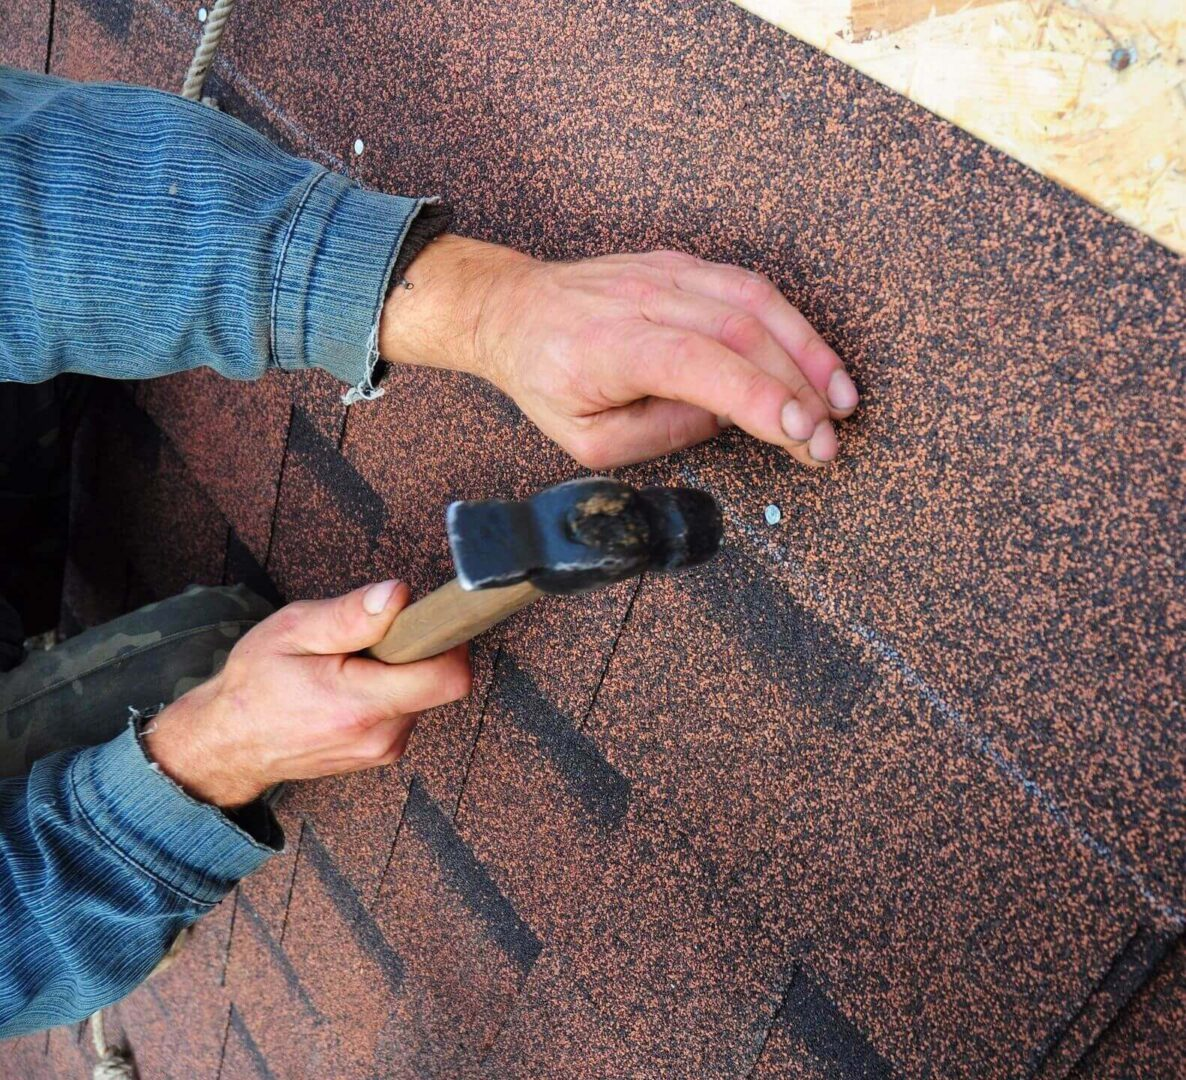 Martin Roofing & Construction